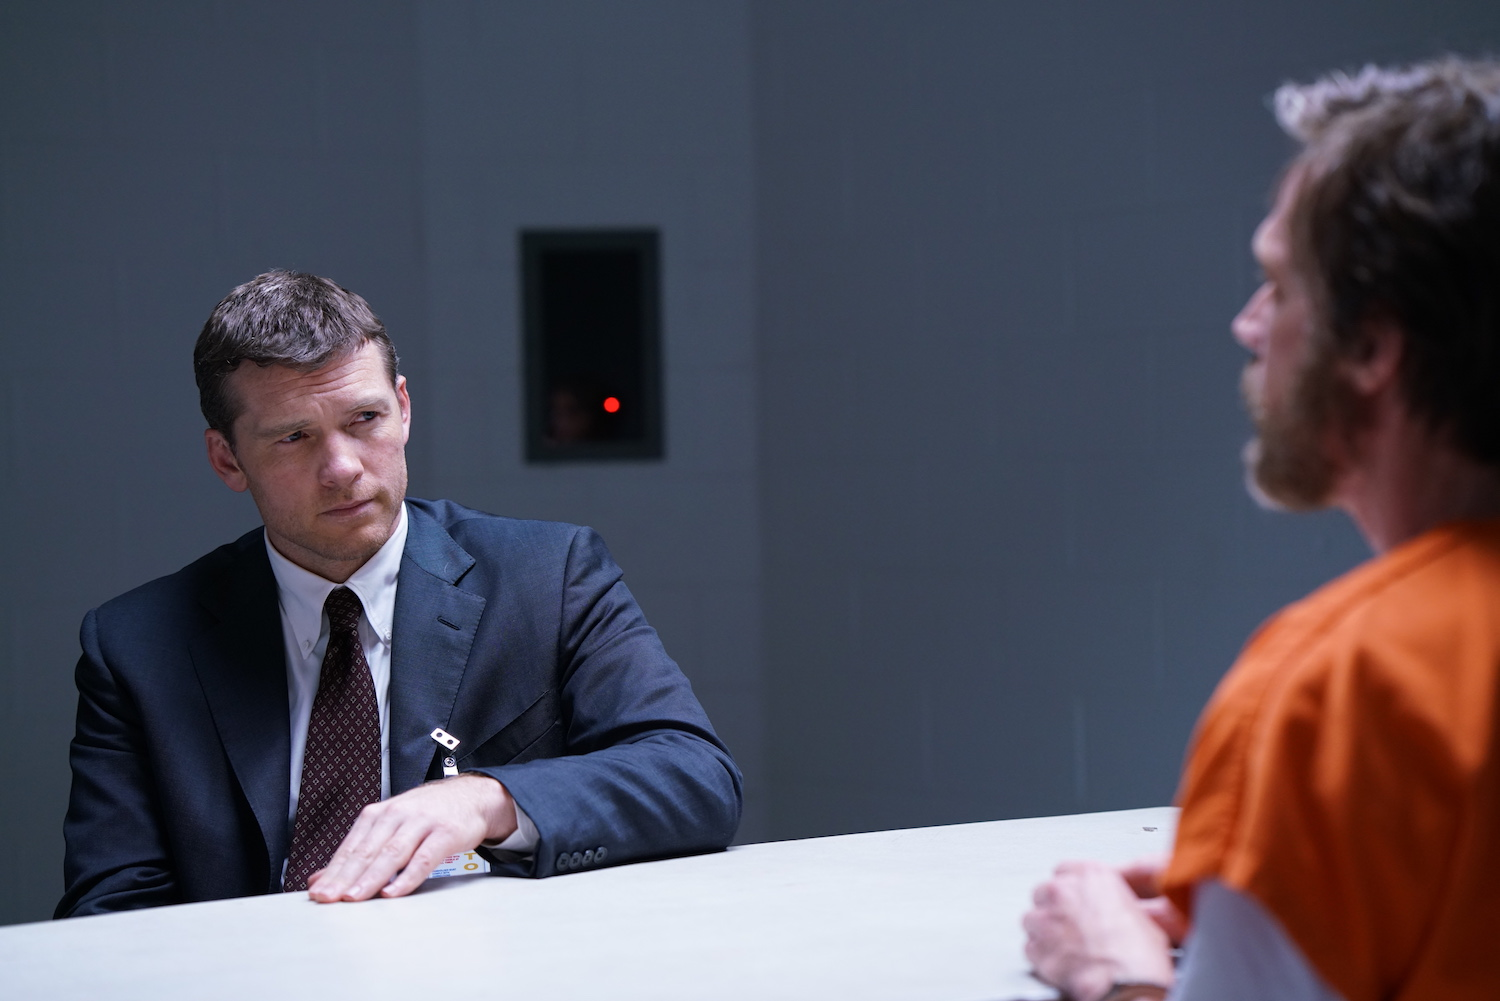 Sam Worthington as Jim Fitzgerald and Paul Bettany as Ted Kaczynski. Manhunt: Unabomber episode 102.